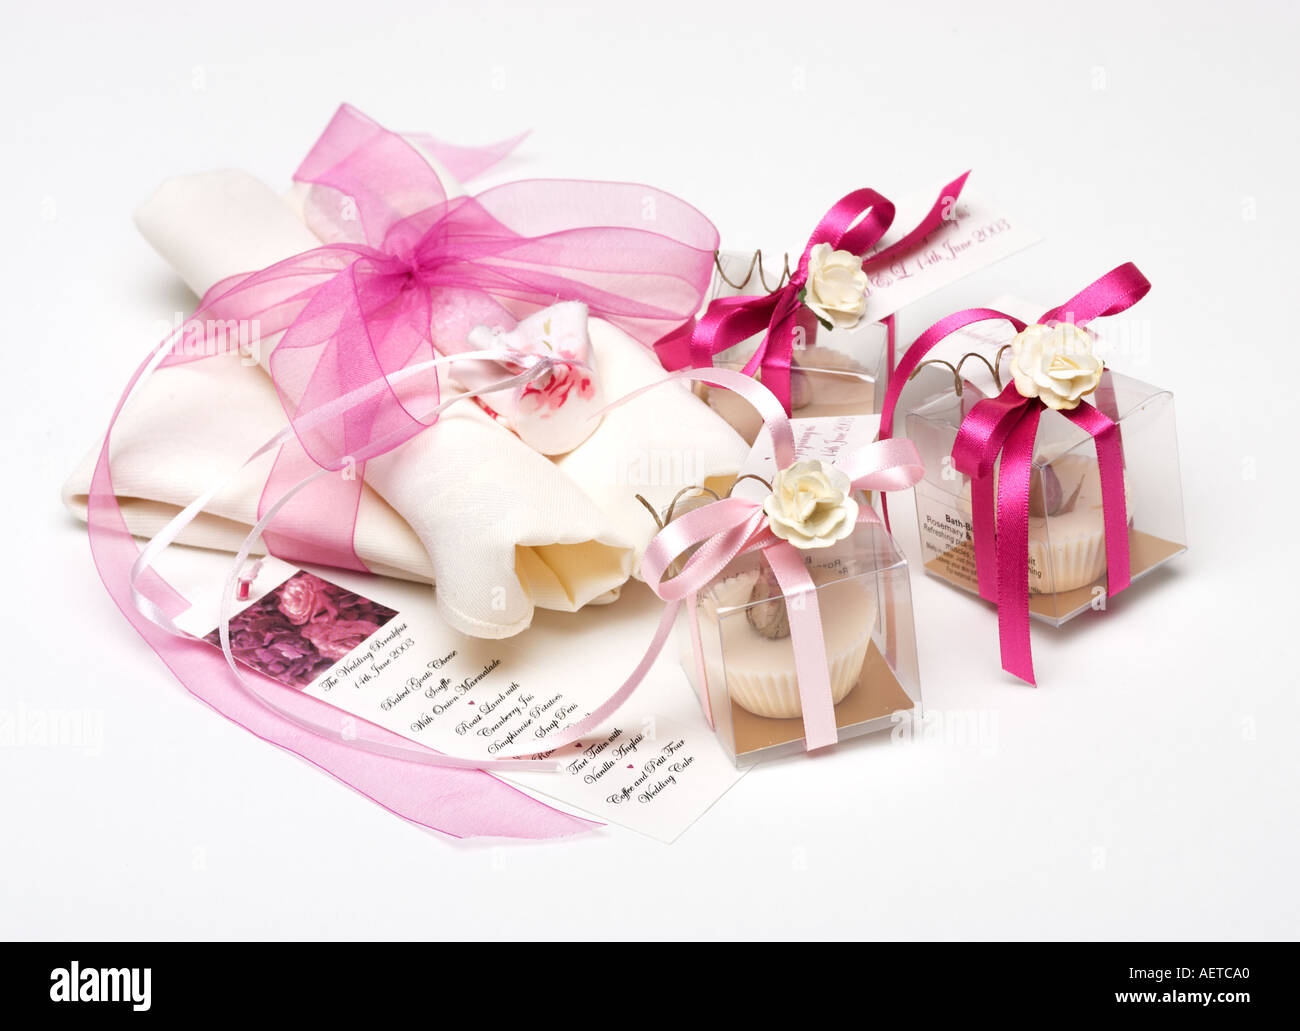 Wedding Present Table Stock Photos & Wedding Present Table Stock ...